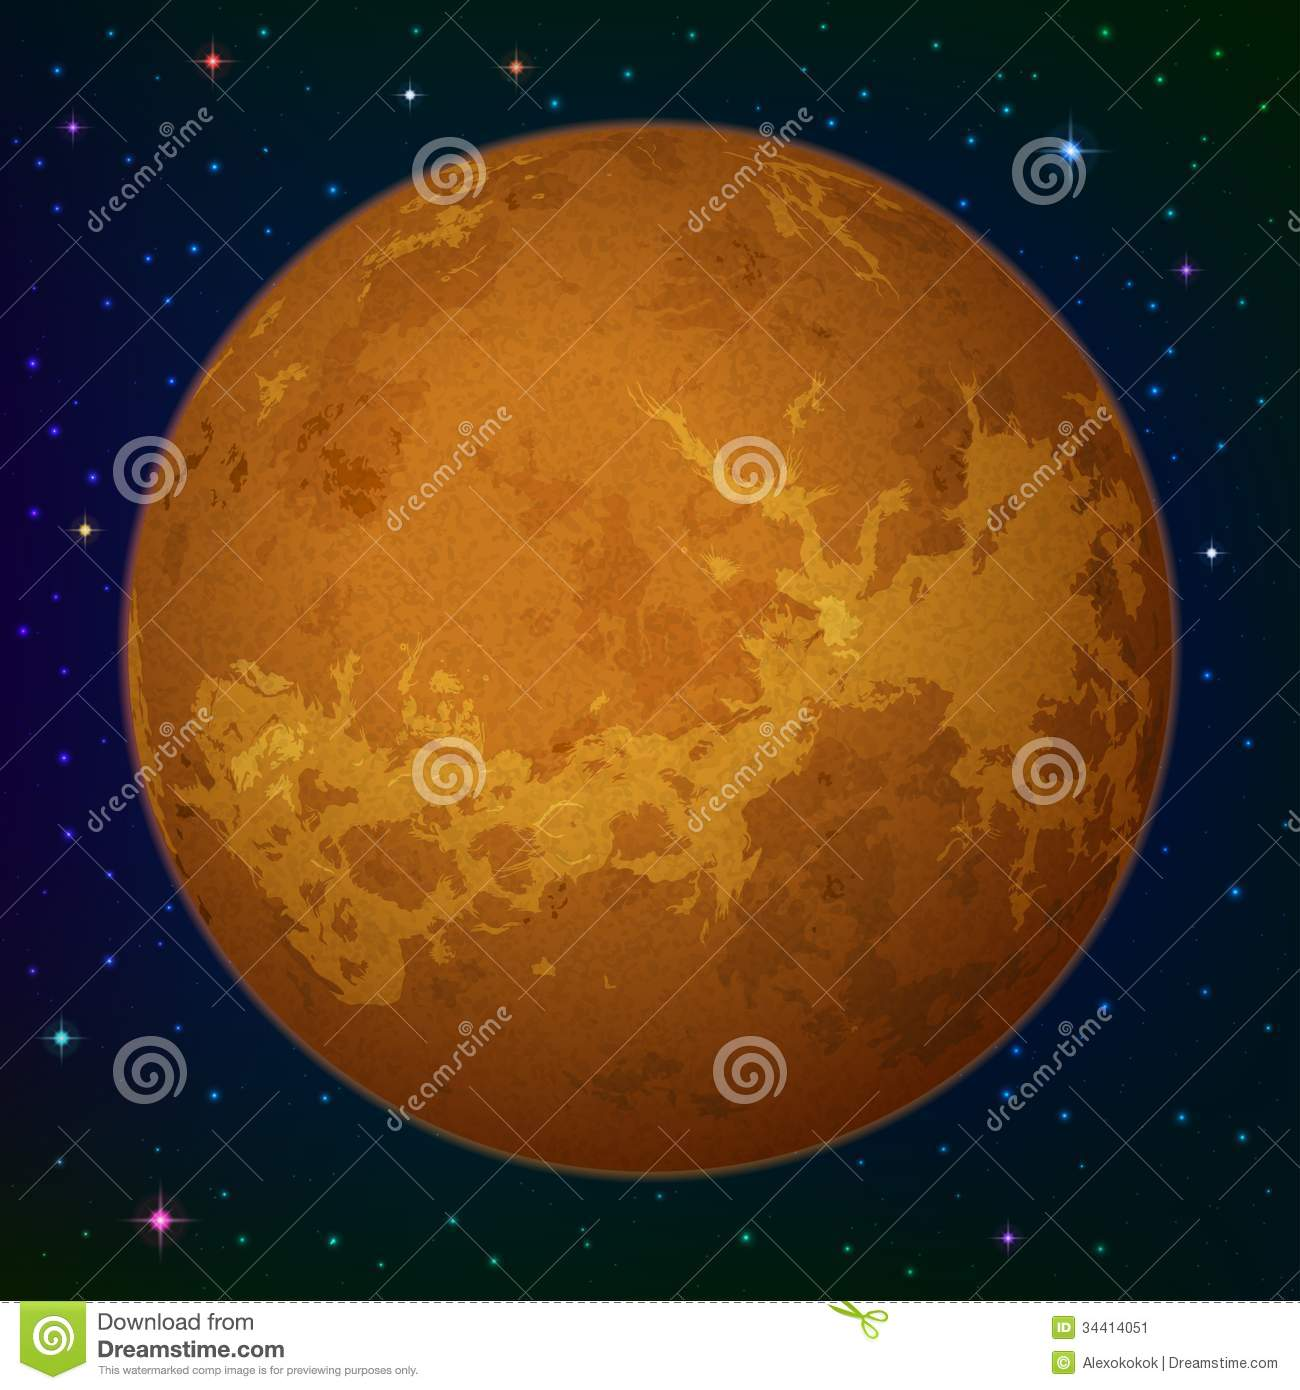 free nasa venus - photo #23